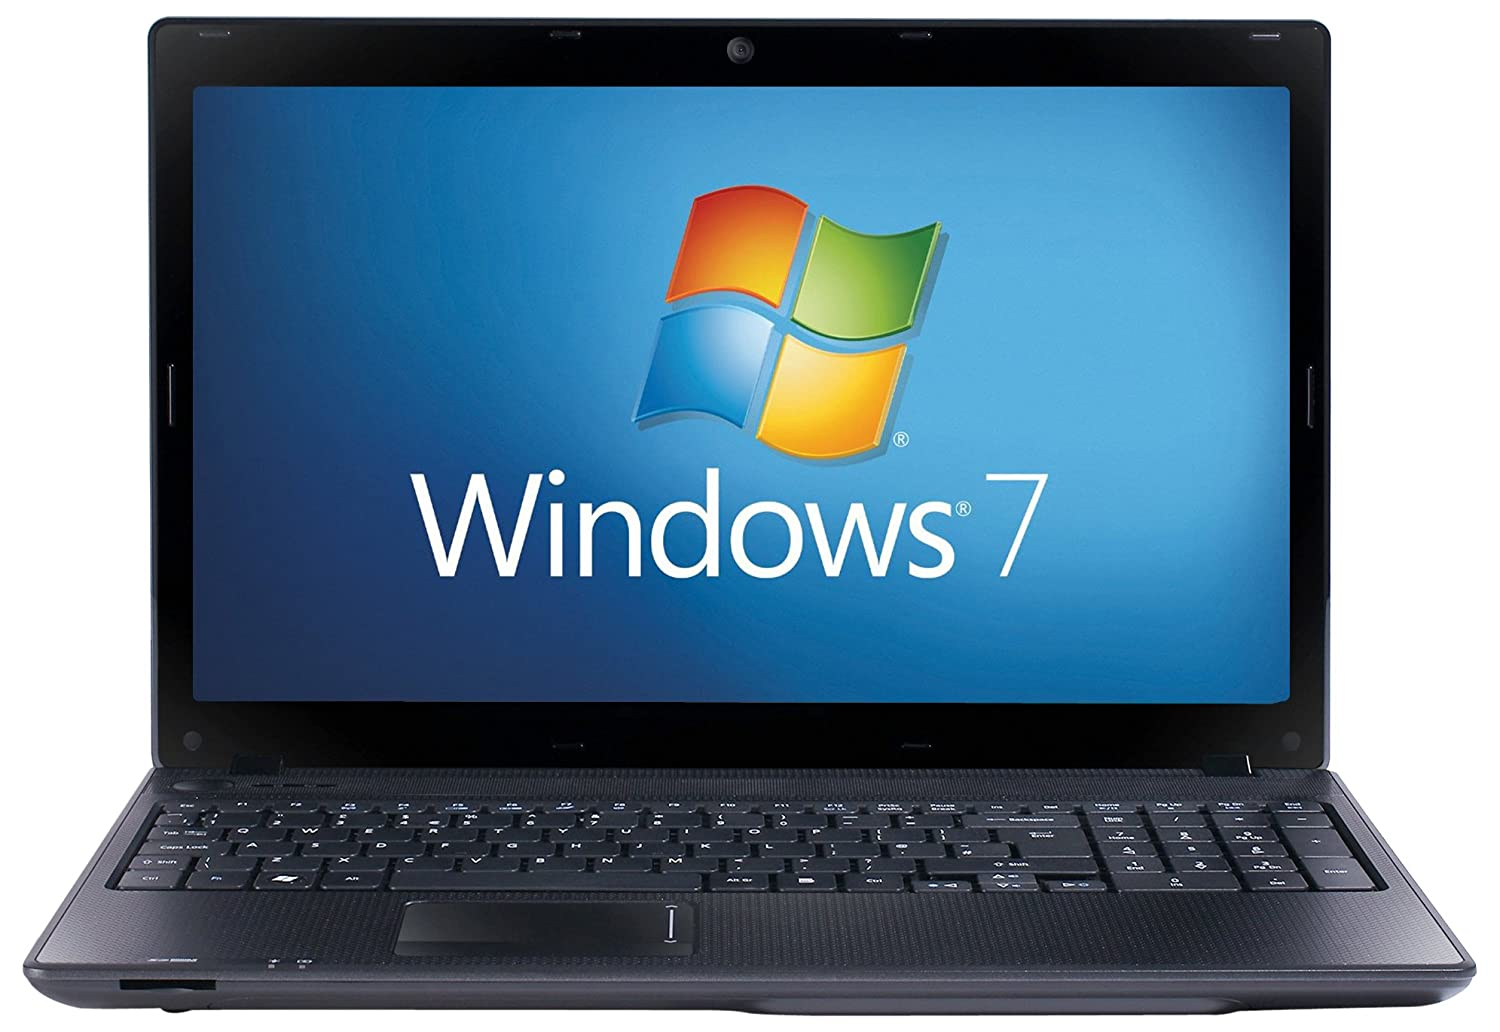 Acer Aspire 7741G Intel WLAN Windows 8 Driver Download